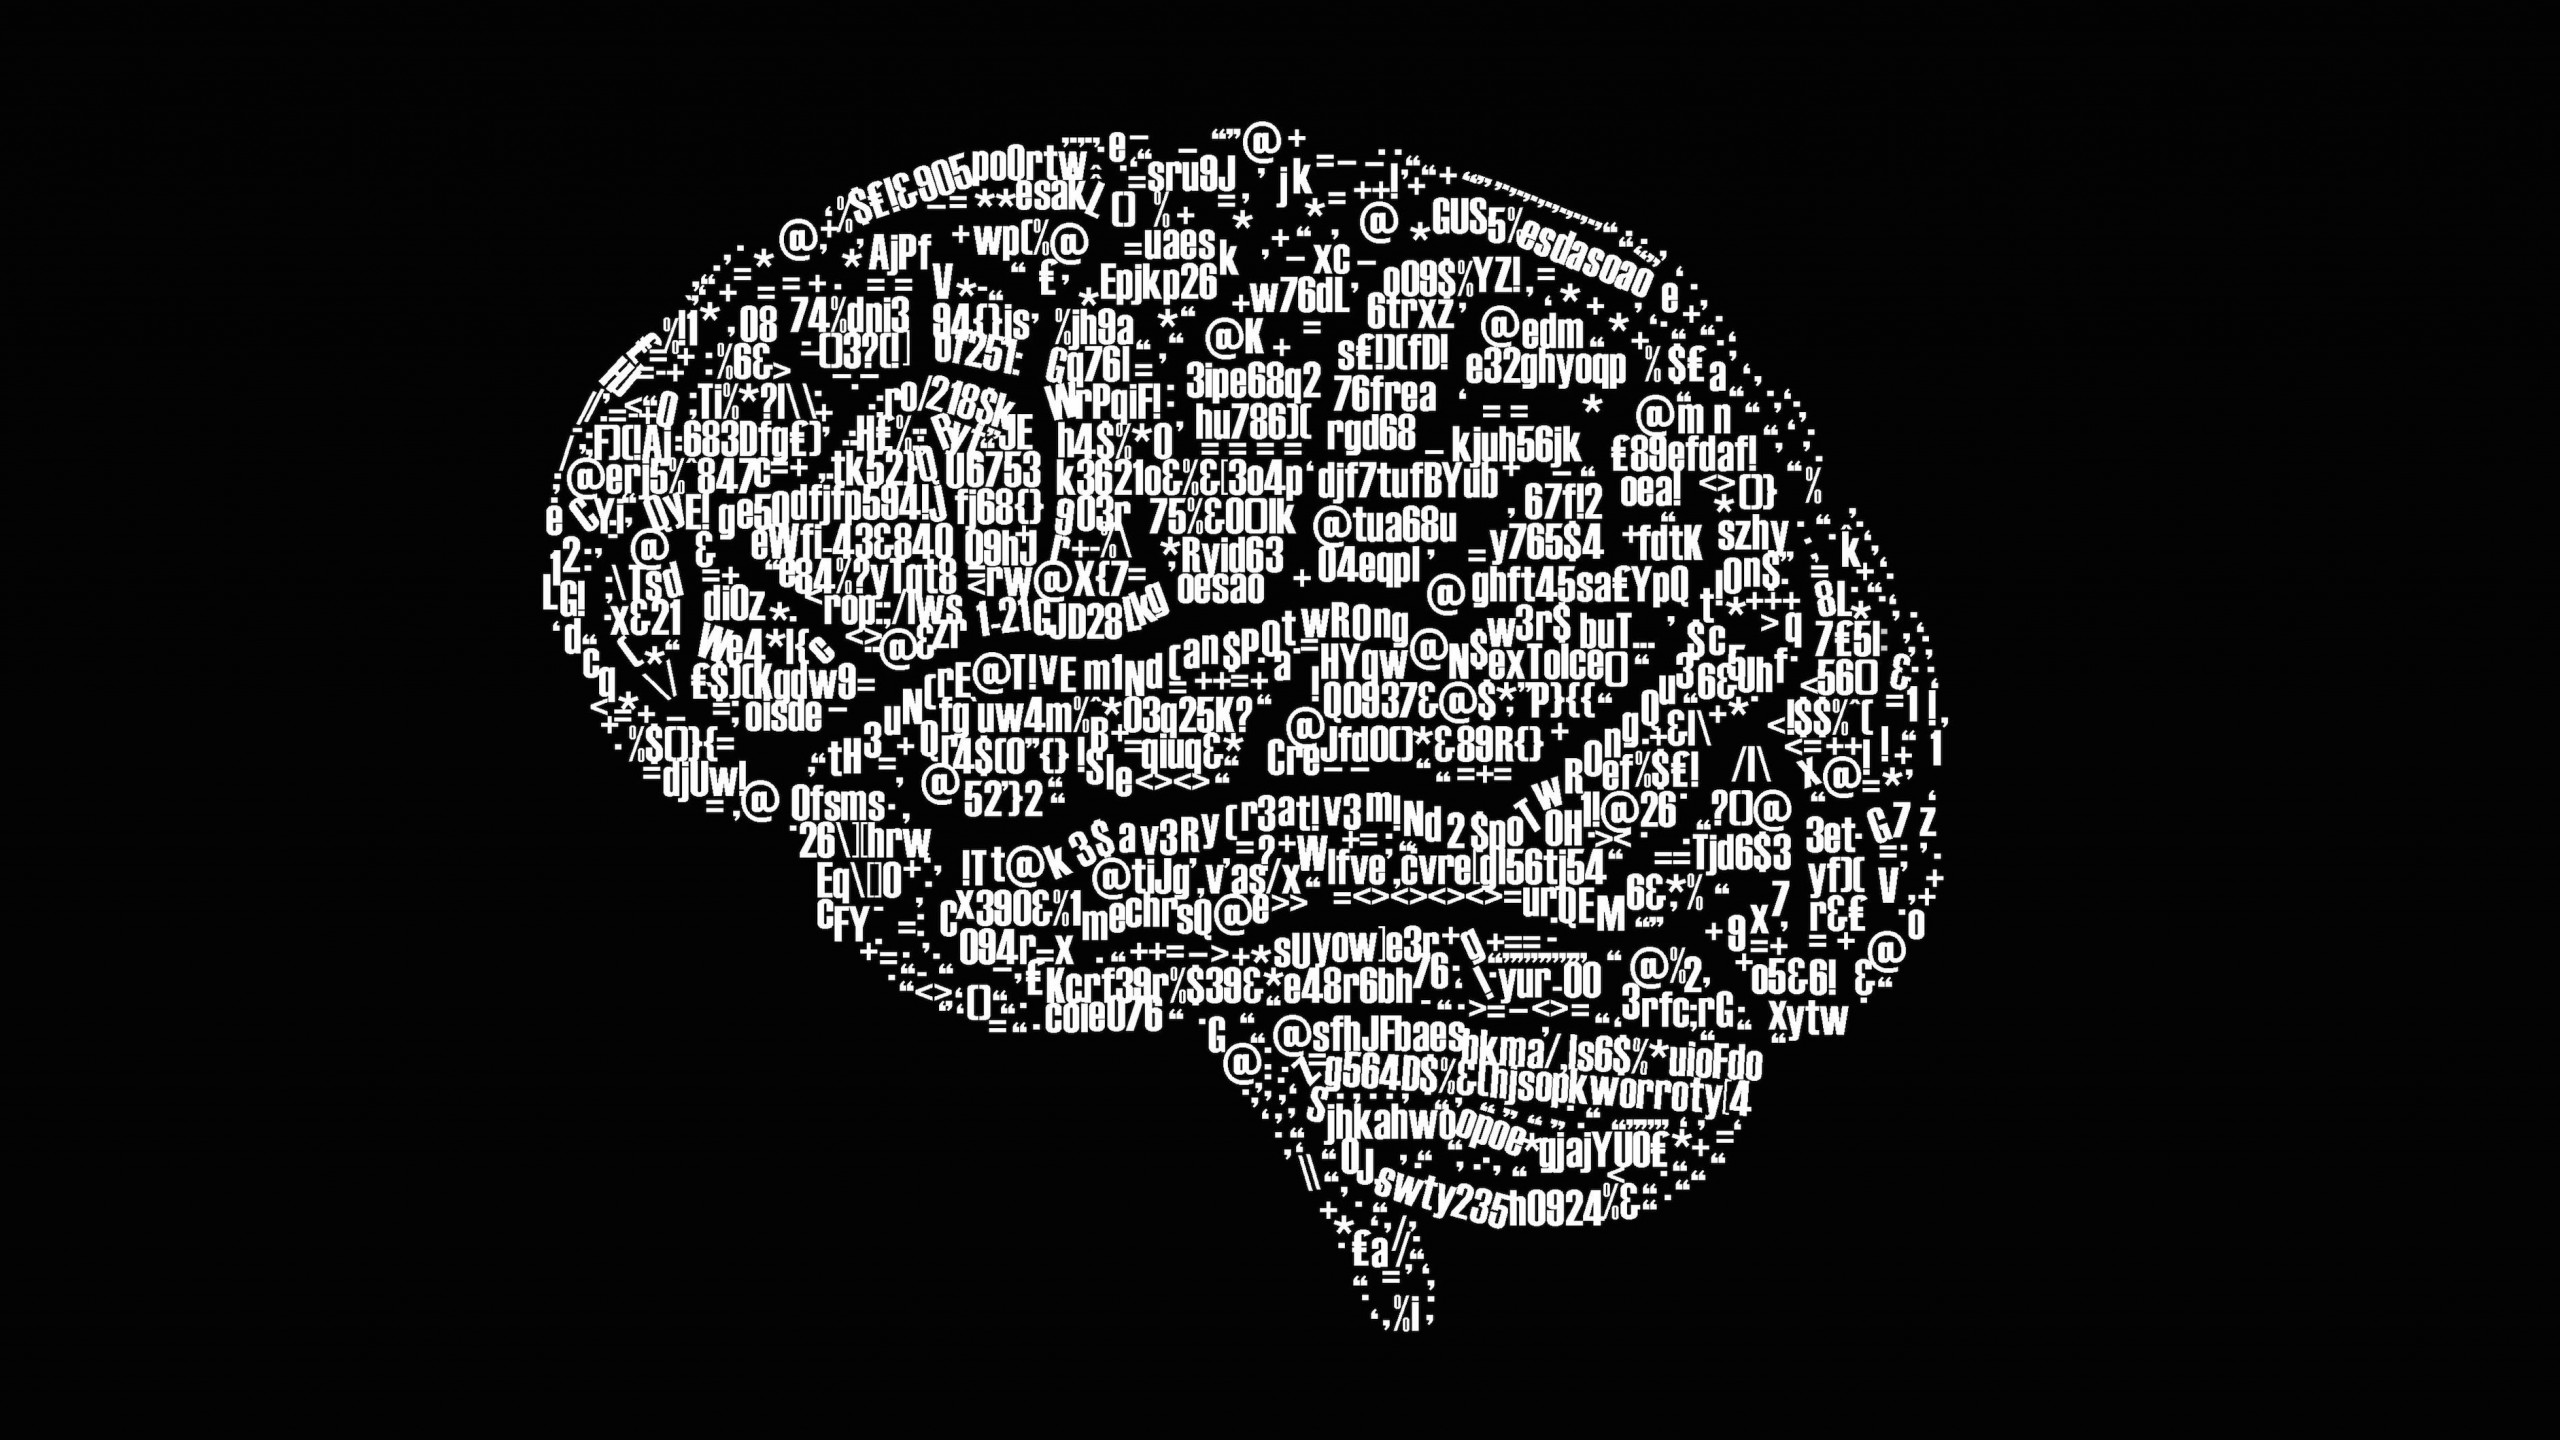 Brain Illustration Typography Wallpaper for Social Media YouTube Channel Art